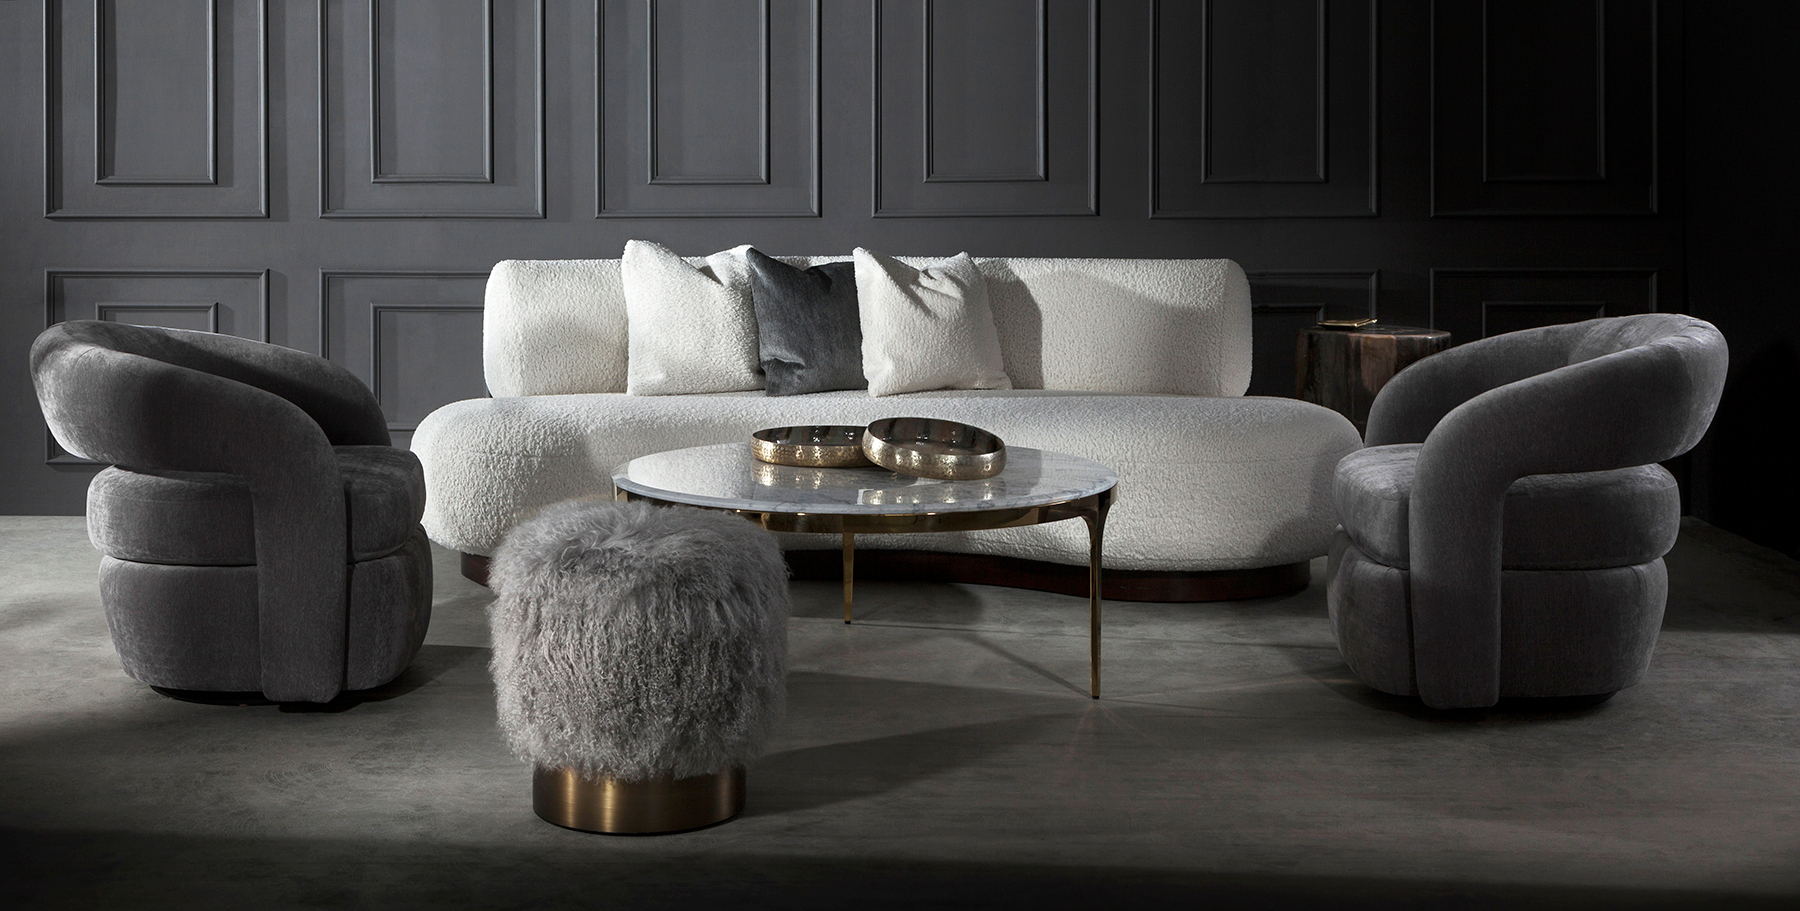 Curved sofas and chairs will be top of mind, along with comfort fabrics like shearling and richly textured surfaces. On either side of the photo are a pair of Targa Chairs, with a Doutzen Stool in front.